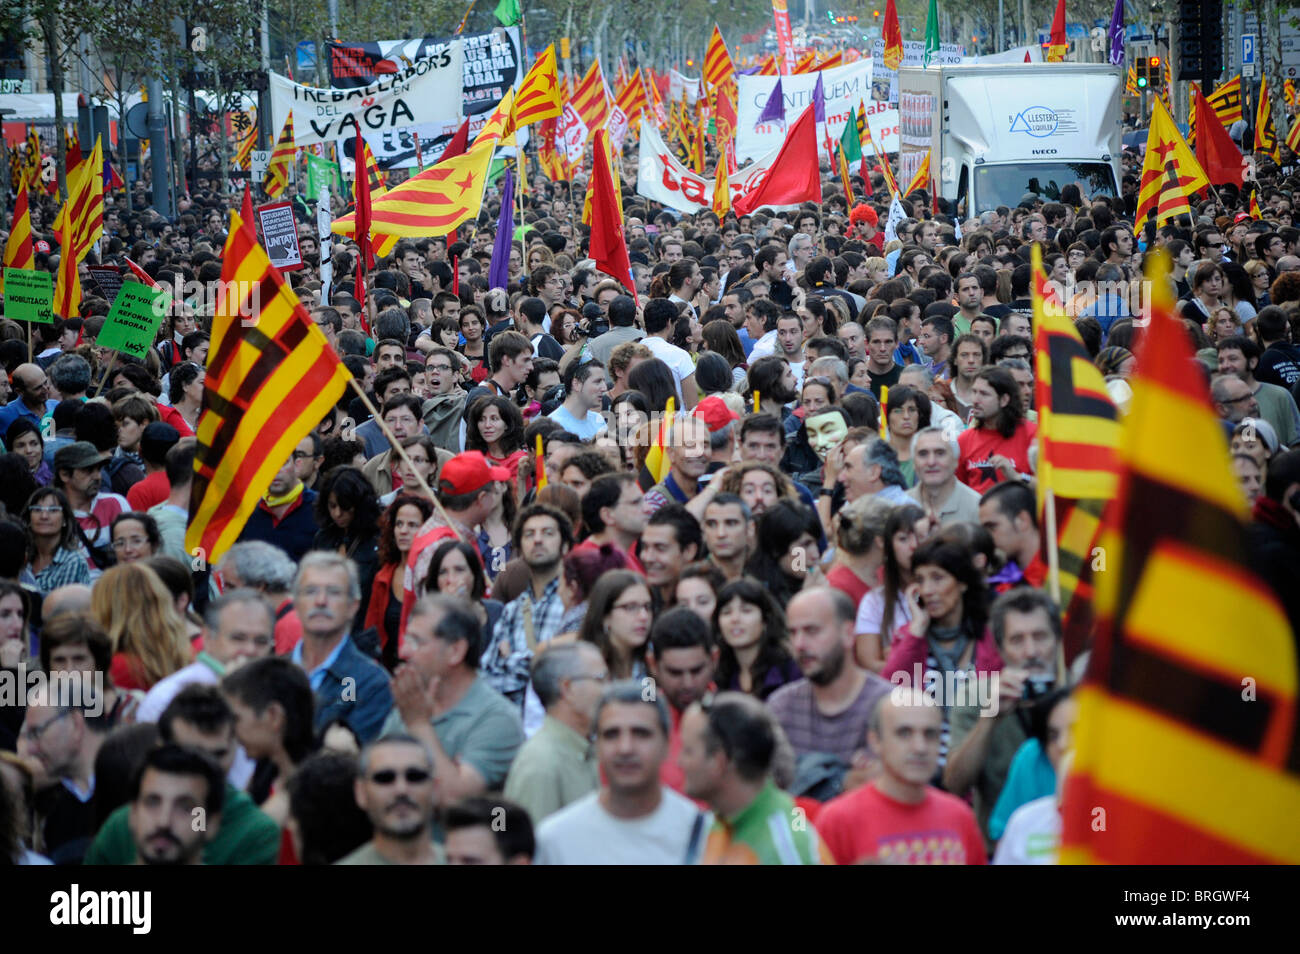 Barcelona,Spain,September 29, 2010 .- Strike across Spain to protest the government's labor reforms and austerity - Stock Image